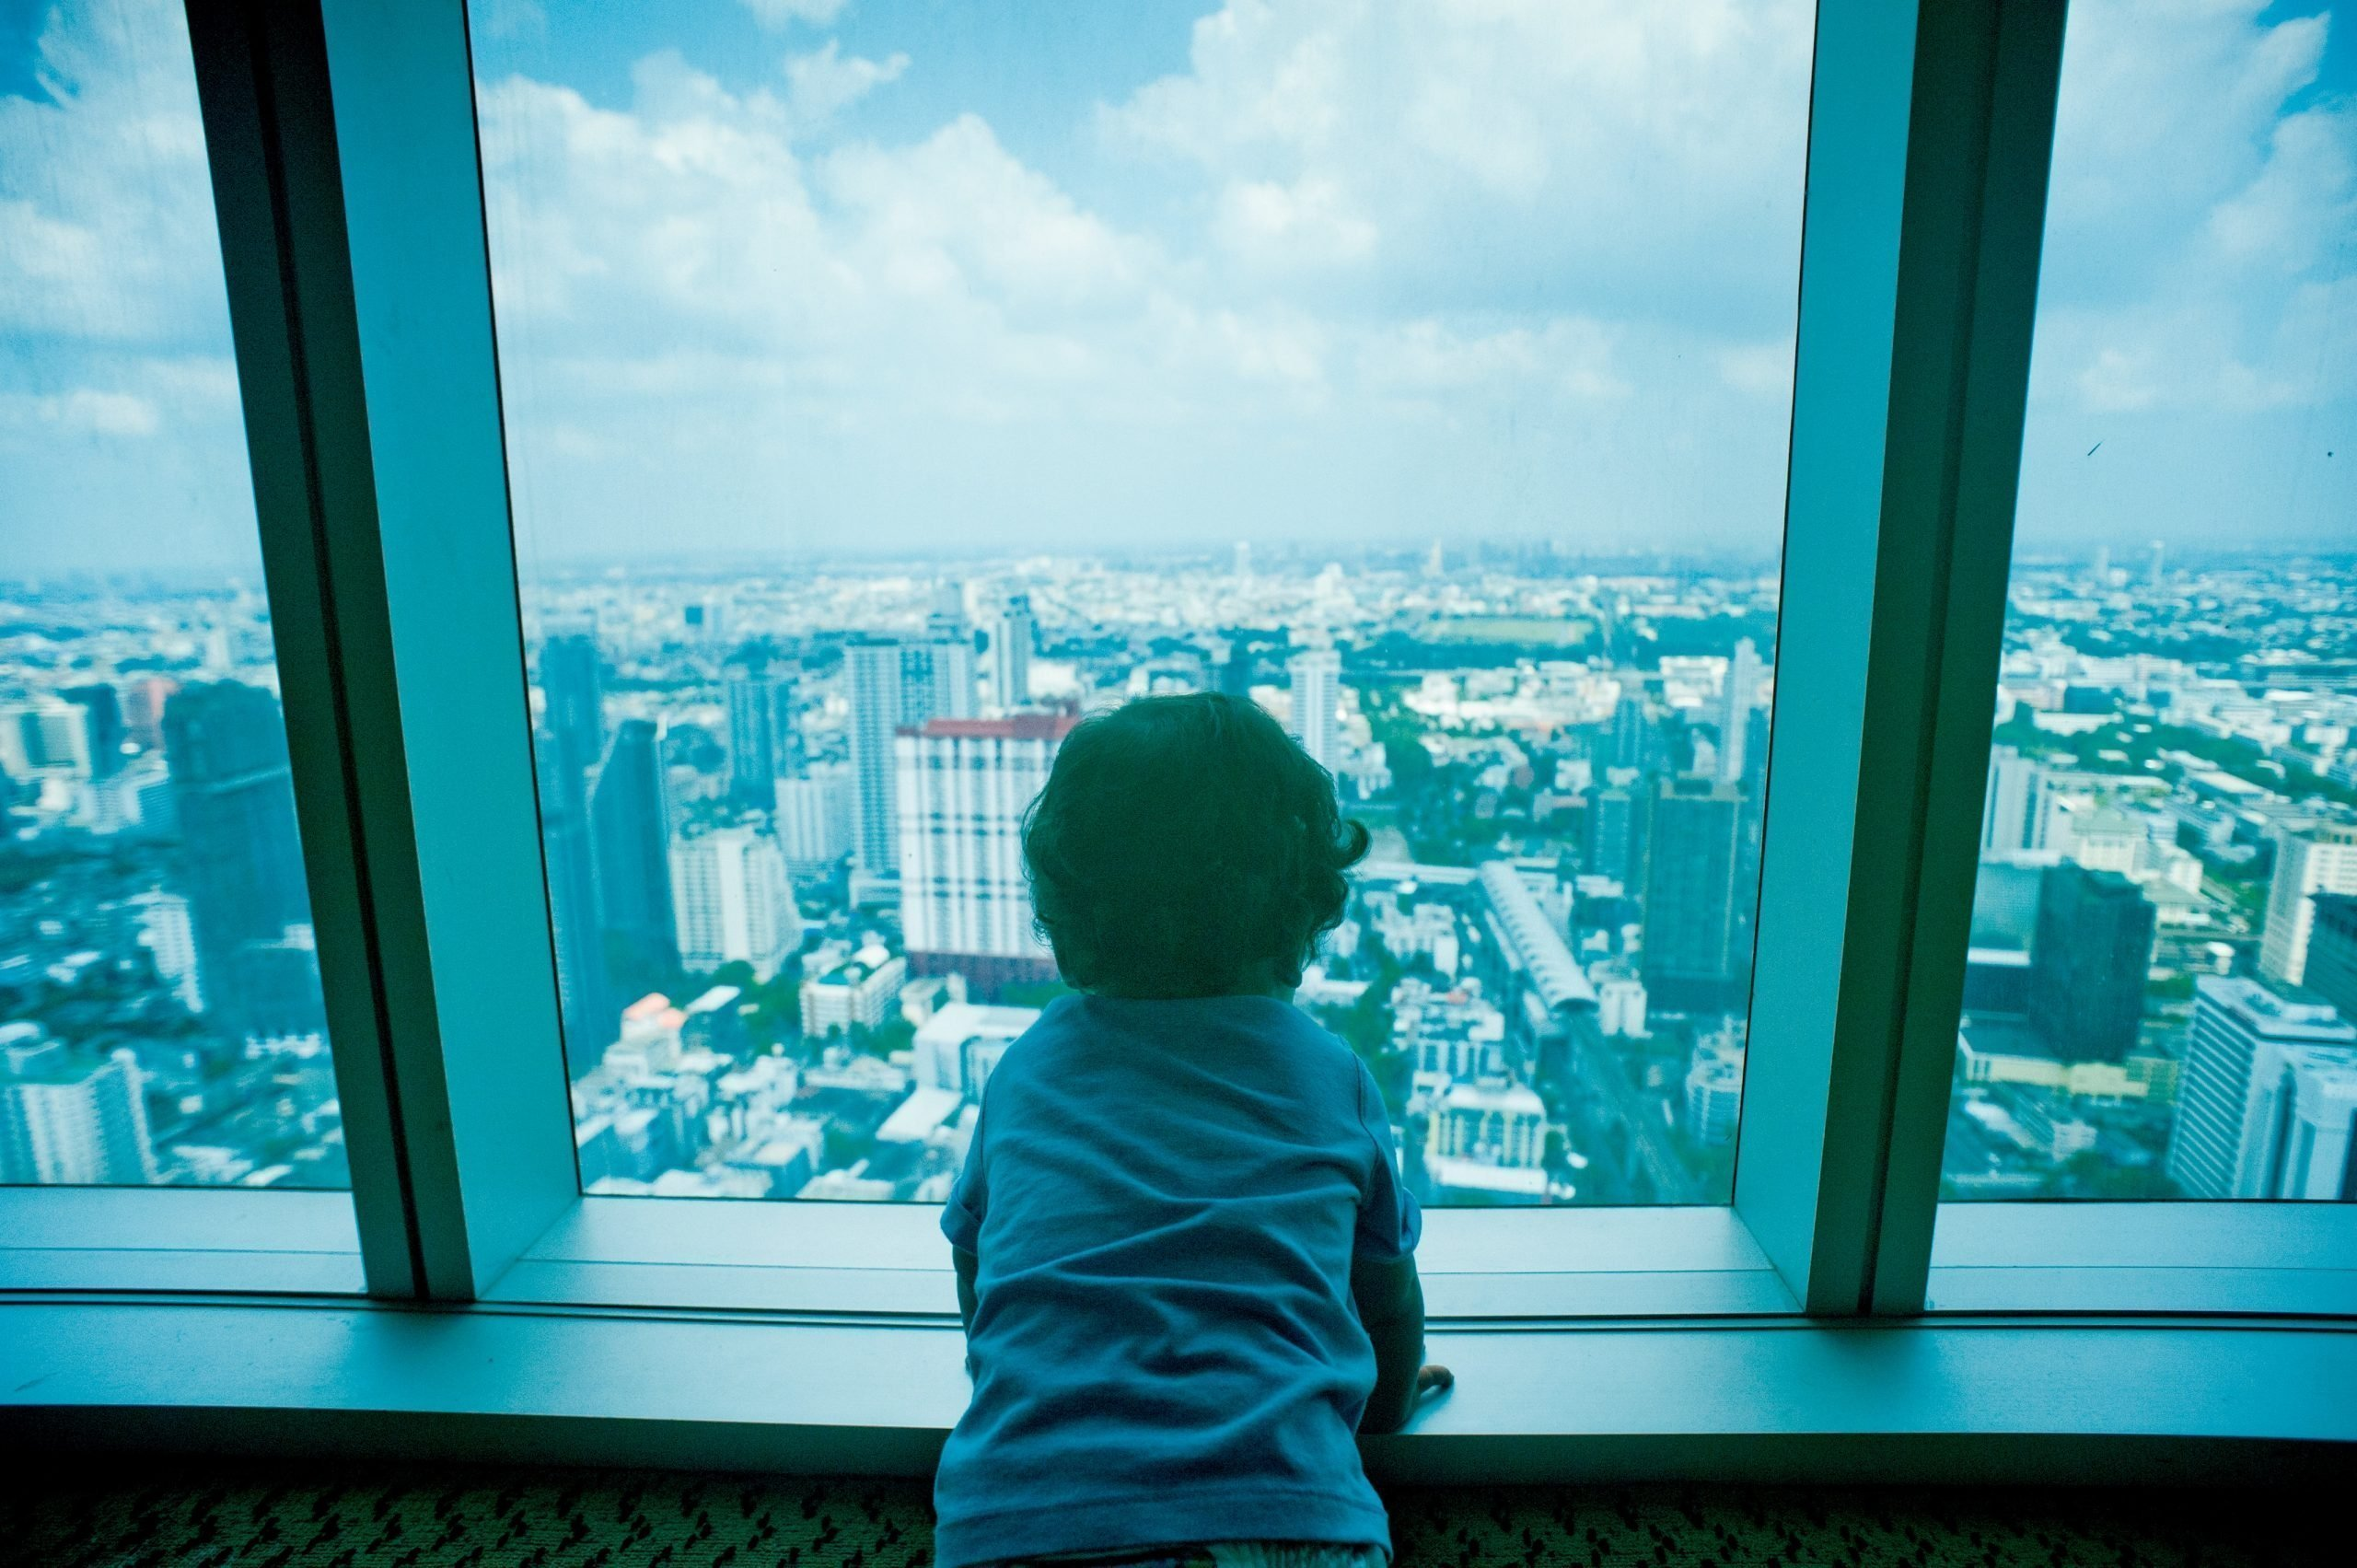 This is a picture a boy looking out onto a vast city for an article called Market Intelligence how big is your world by Octopus Competitive Intelligence consultancy for Competitor Analysis and market intelligence services